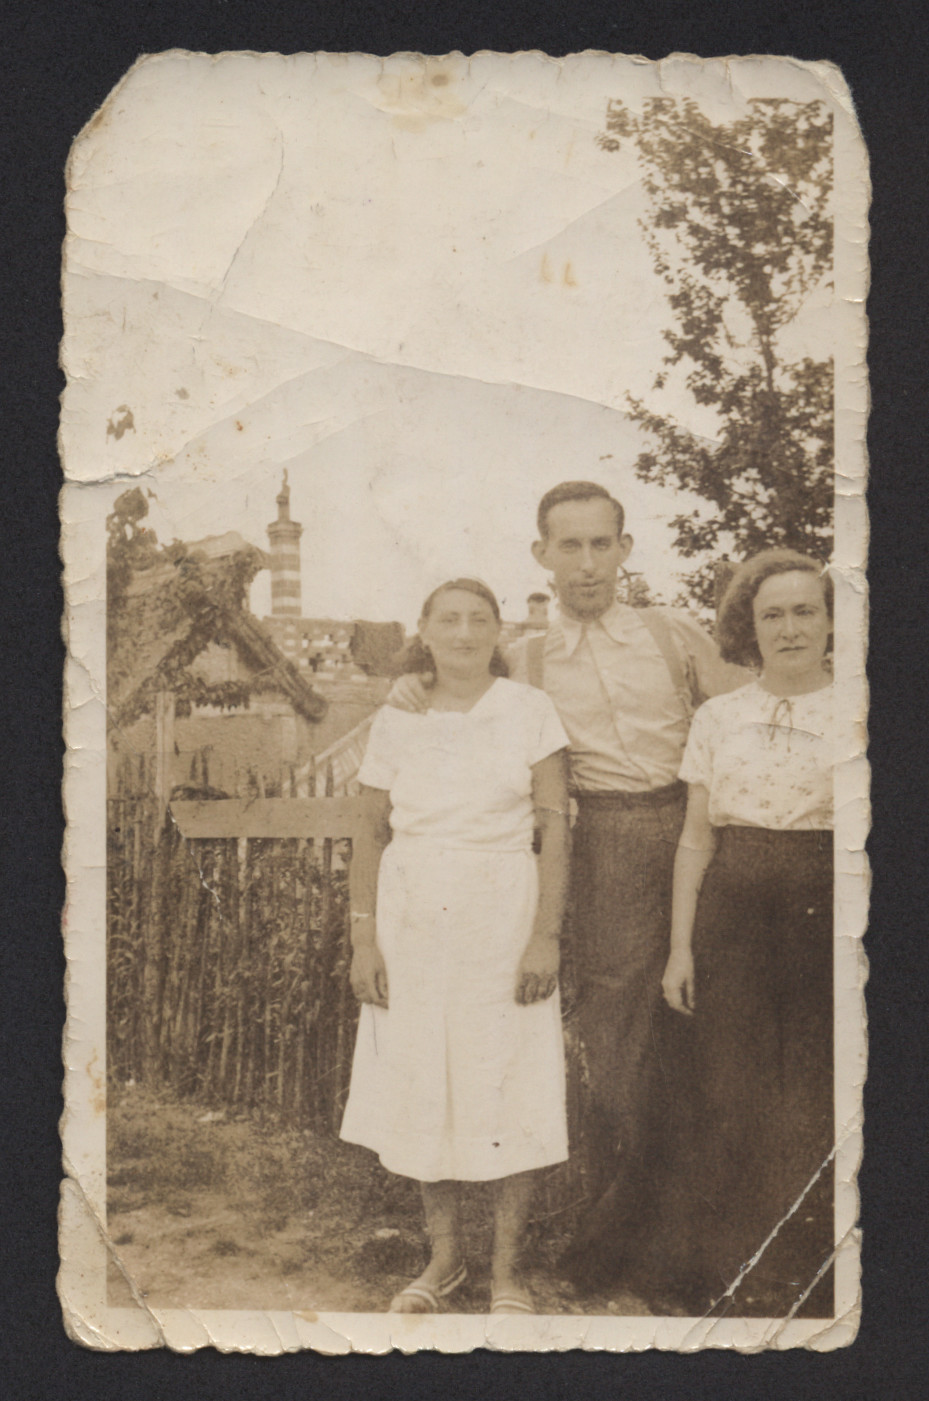 Three members of the Cwajgenbaum stand outside in prewar Poland.  Pictured are Gittle Cwajgenbaum with her daughter Sara and an unknown man.